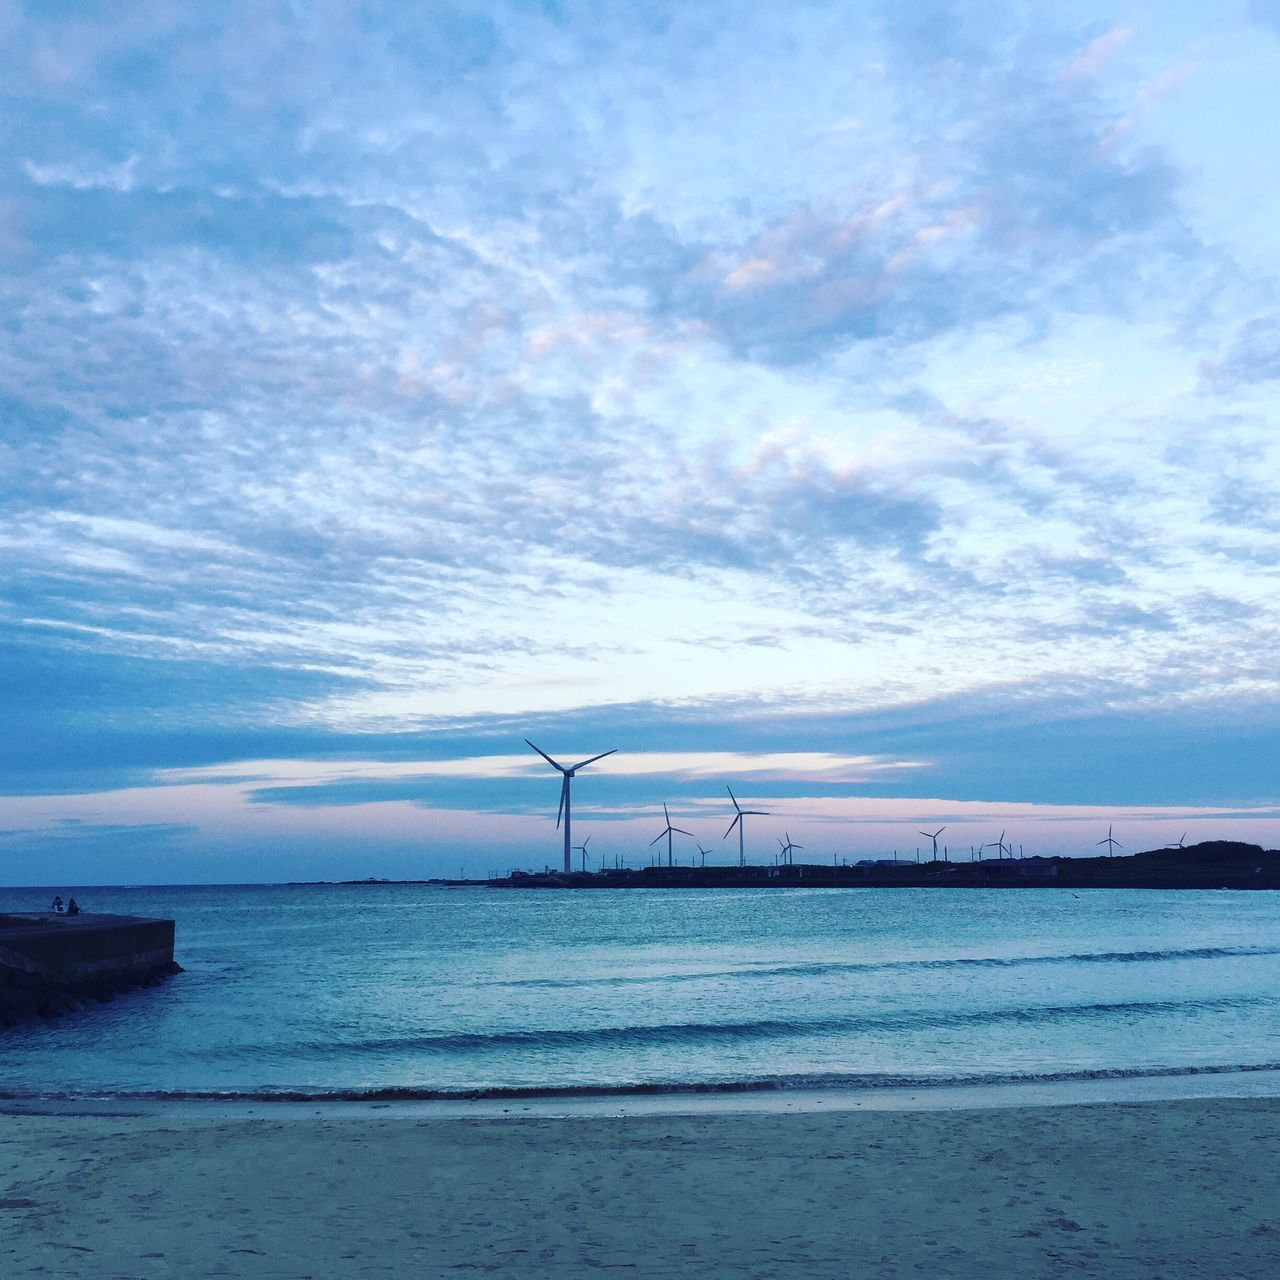 sky, sea, water, no people, outdoors, horizon over water, waterfront, cloud - sky, scenics, nature, day, tranquil scene, tranquility, beauty in nature, industry, architecture